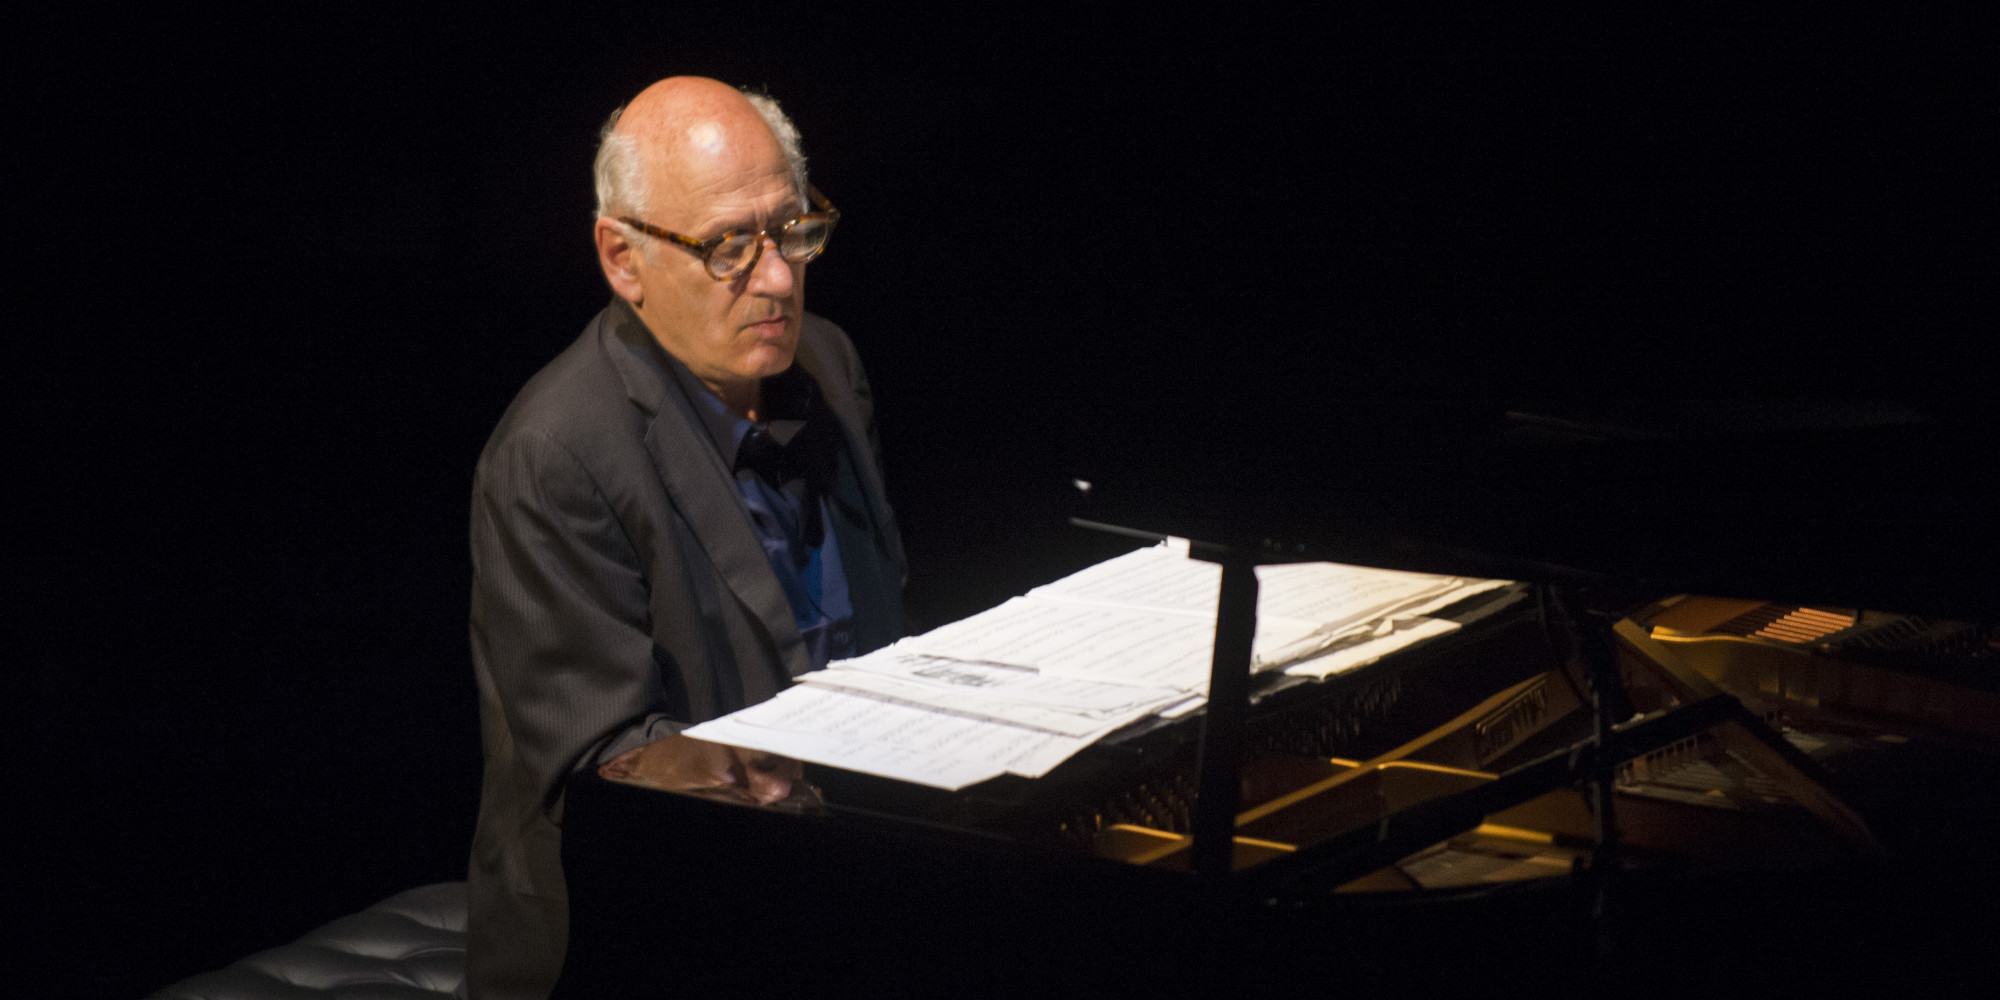 BARCELONA, SPAIN - MARCH 13: Michael Nyman performs on stage at Barts on March 13, 2014 in Barcelona, Spain. (Photo by Jordi Vidal/Redferns via Getty Images)